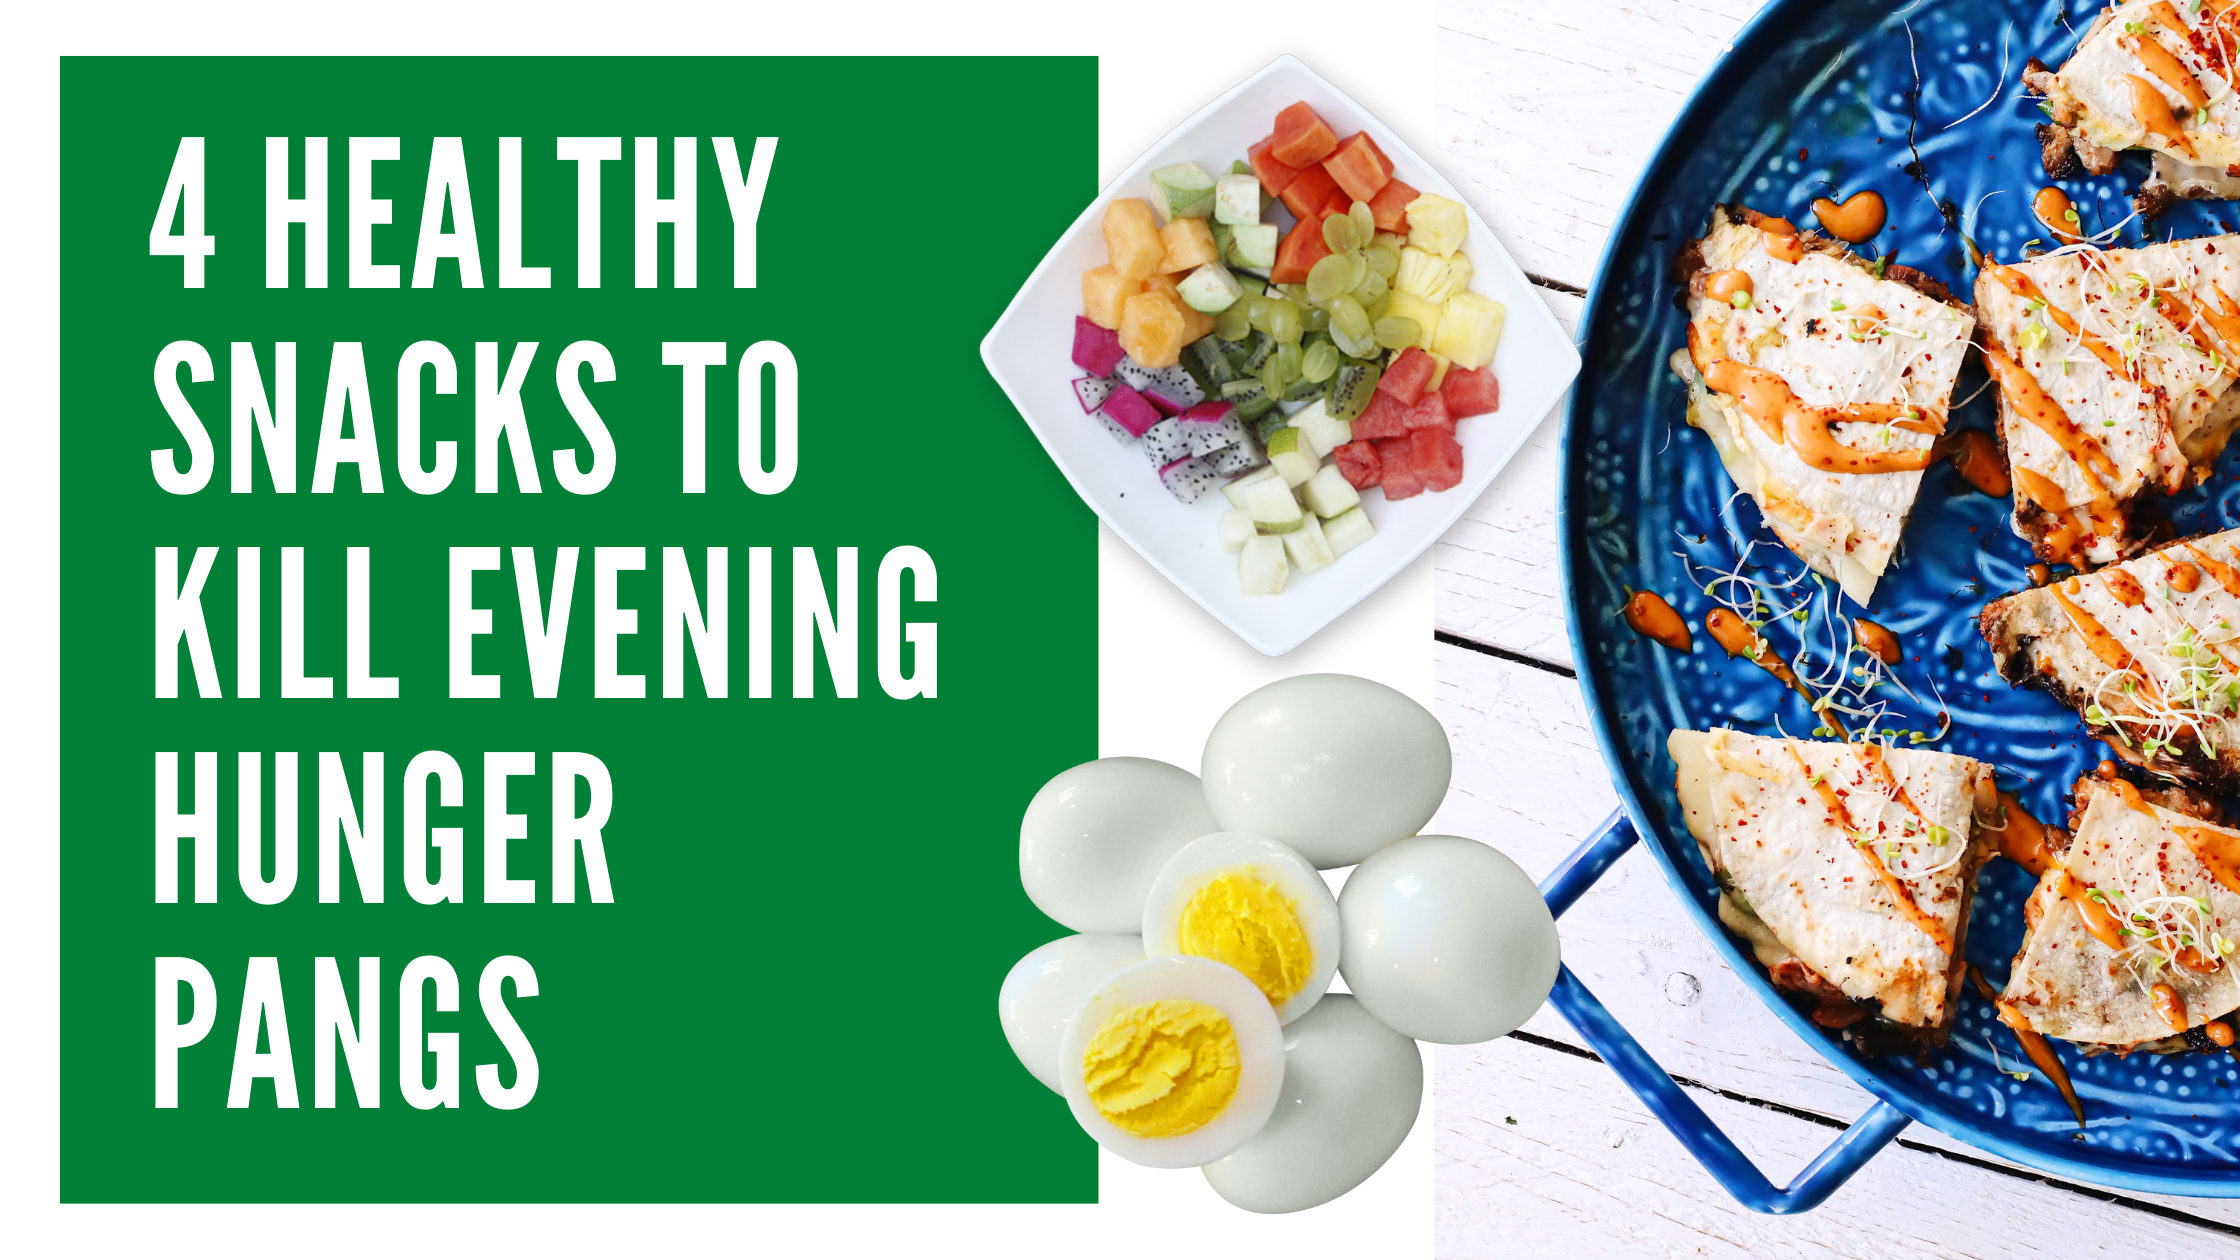 4-healthy-snacks-to-kill-evening-hunger-pangs